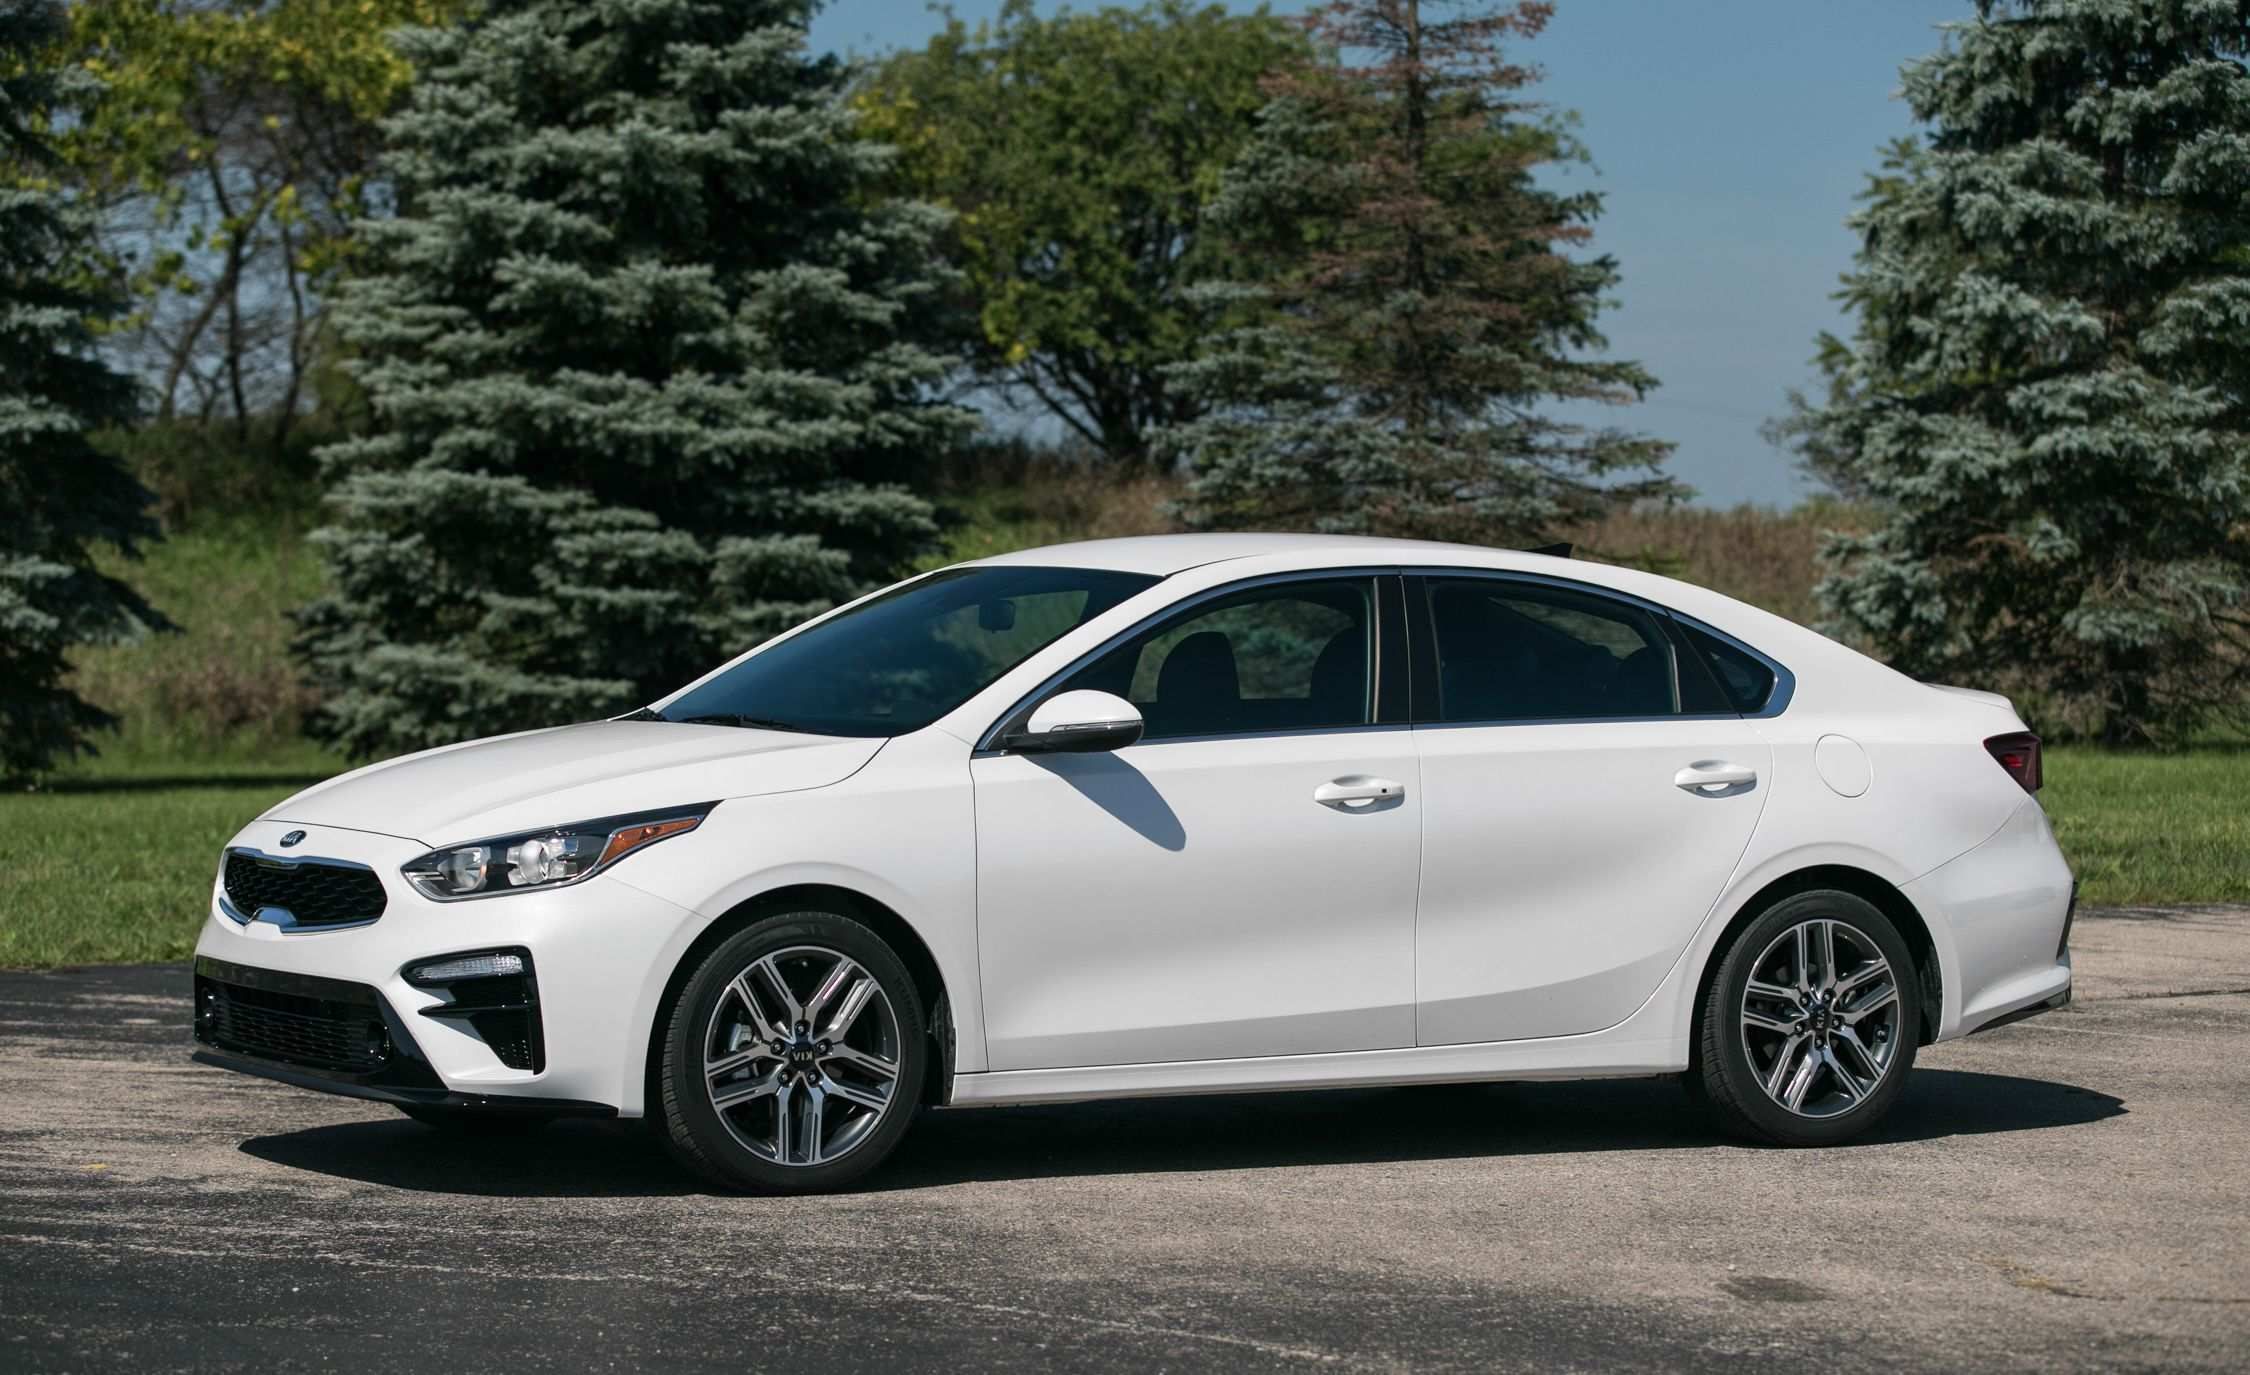 73 The Best 2019 Kia Forte5 Hatchback Interior